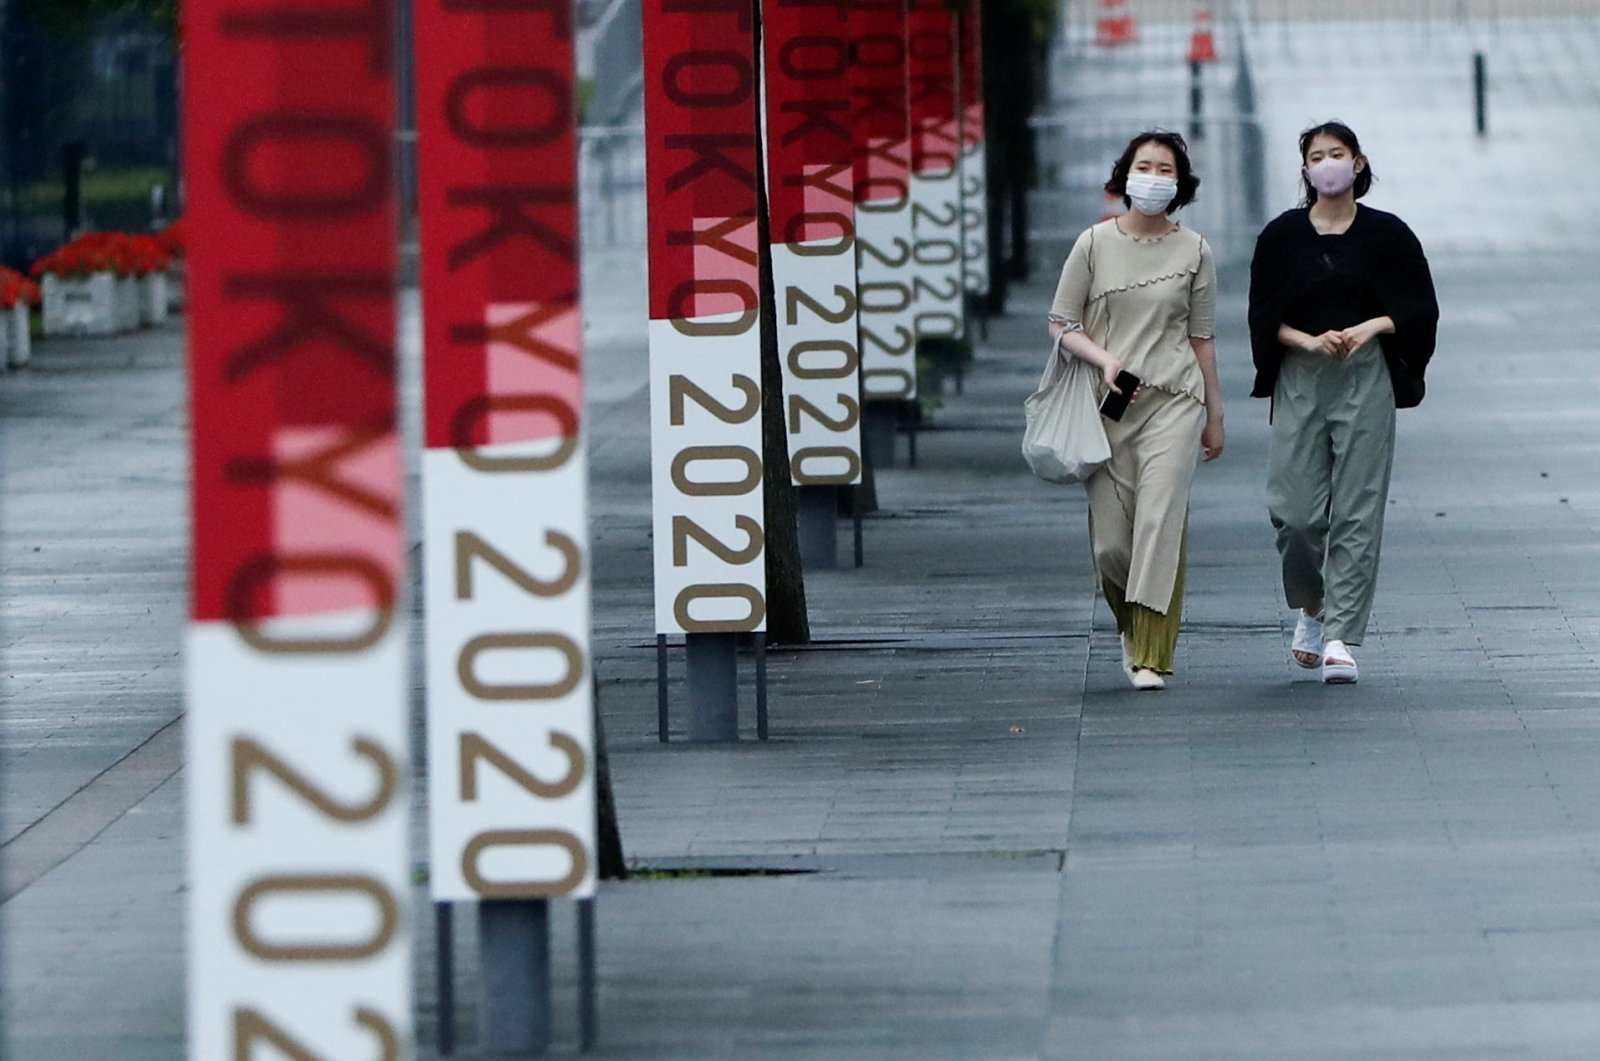 Pedestrians in safety masks against COVID-19 walk past Tokyo 2020 Olympic Games advertising in the Centre Promenade Park, Tokyo, Japan, July 8, 2021. (Reuters Photo)